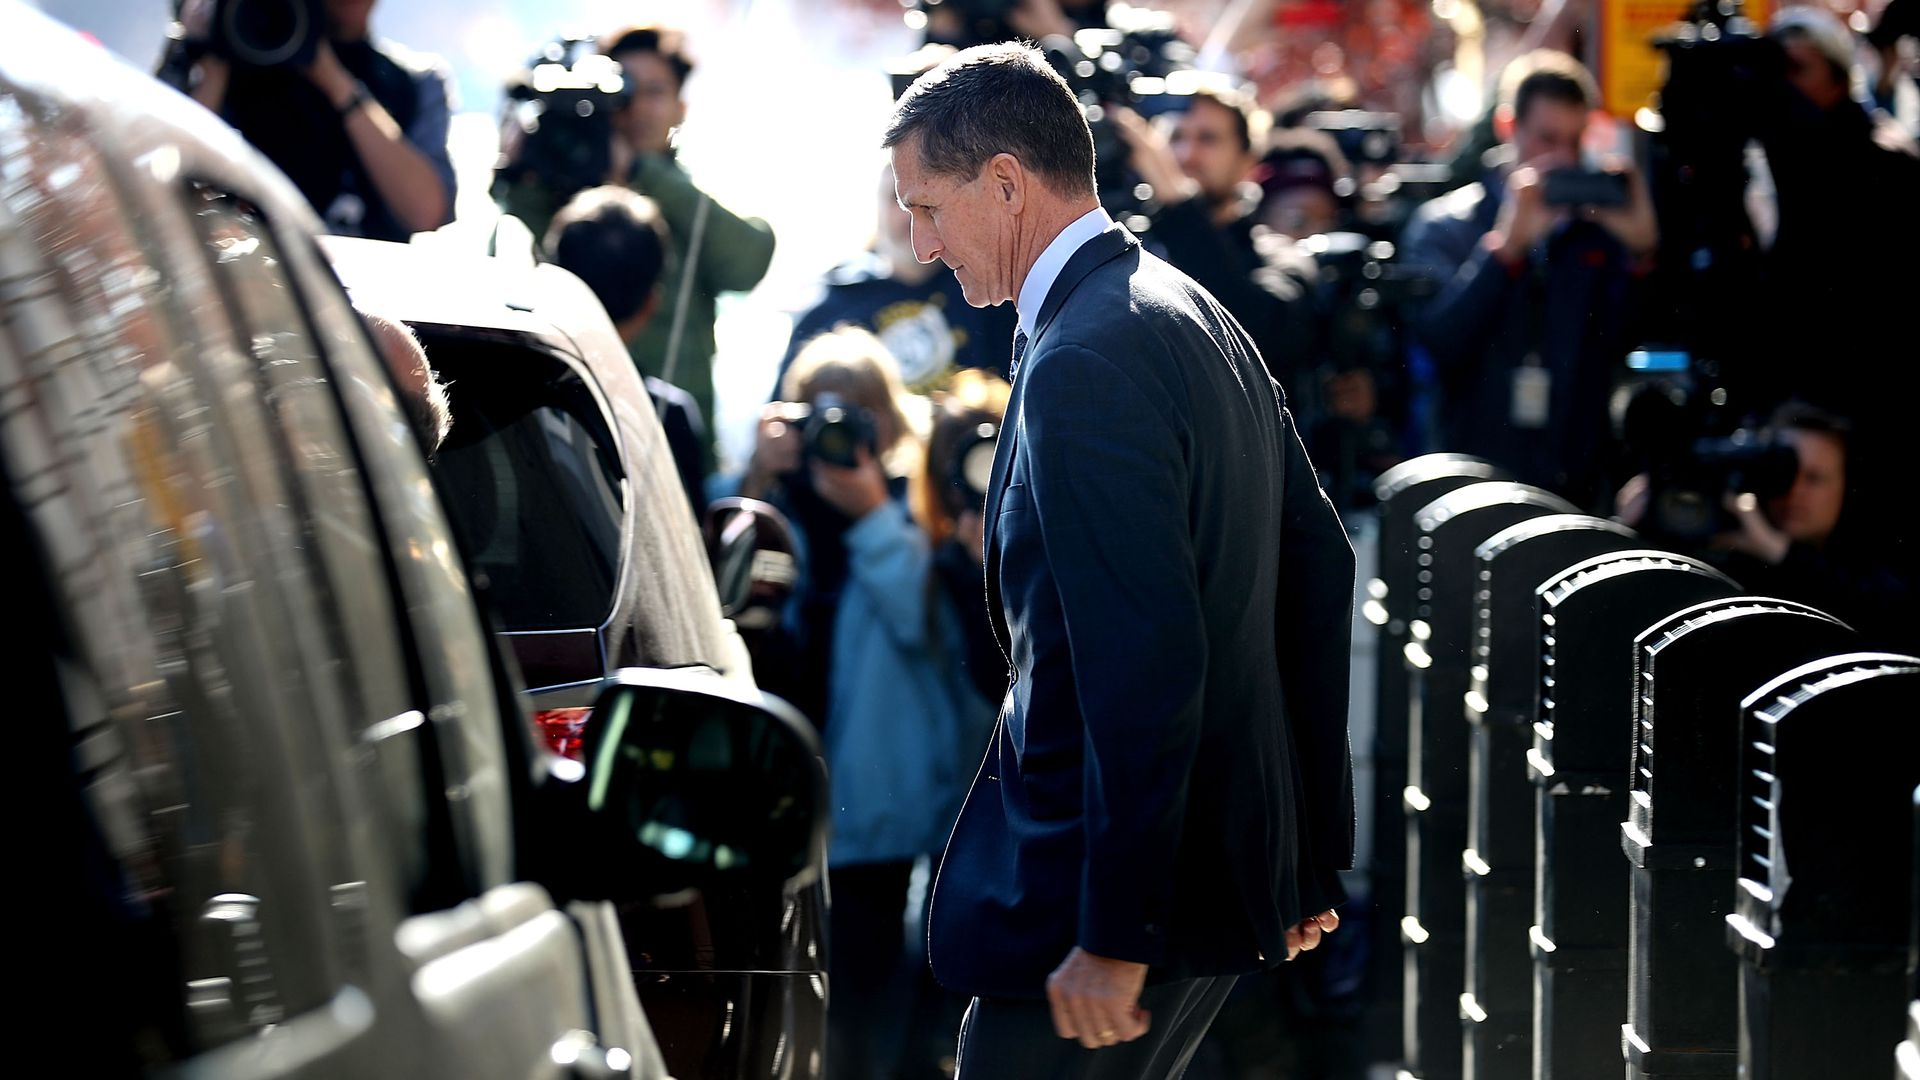 Michael Flynn, former national security advisor to President Donald Trump, leaves following his plea hearing